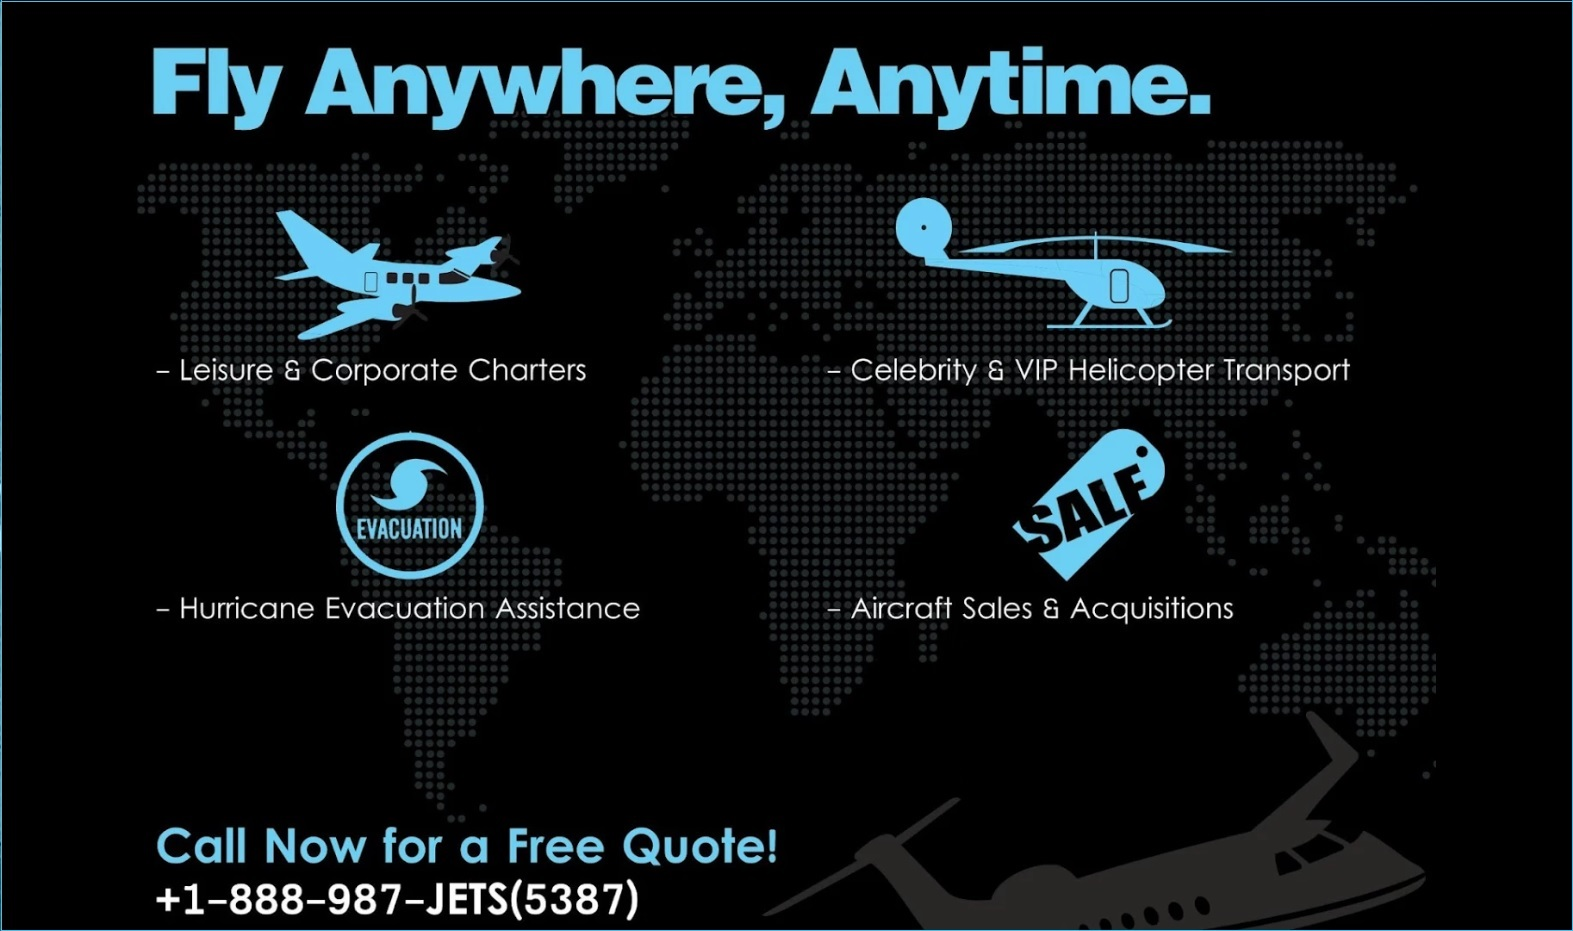 Charter Services, private jet, fly anytime, on demand,